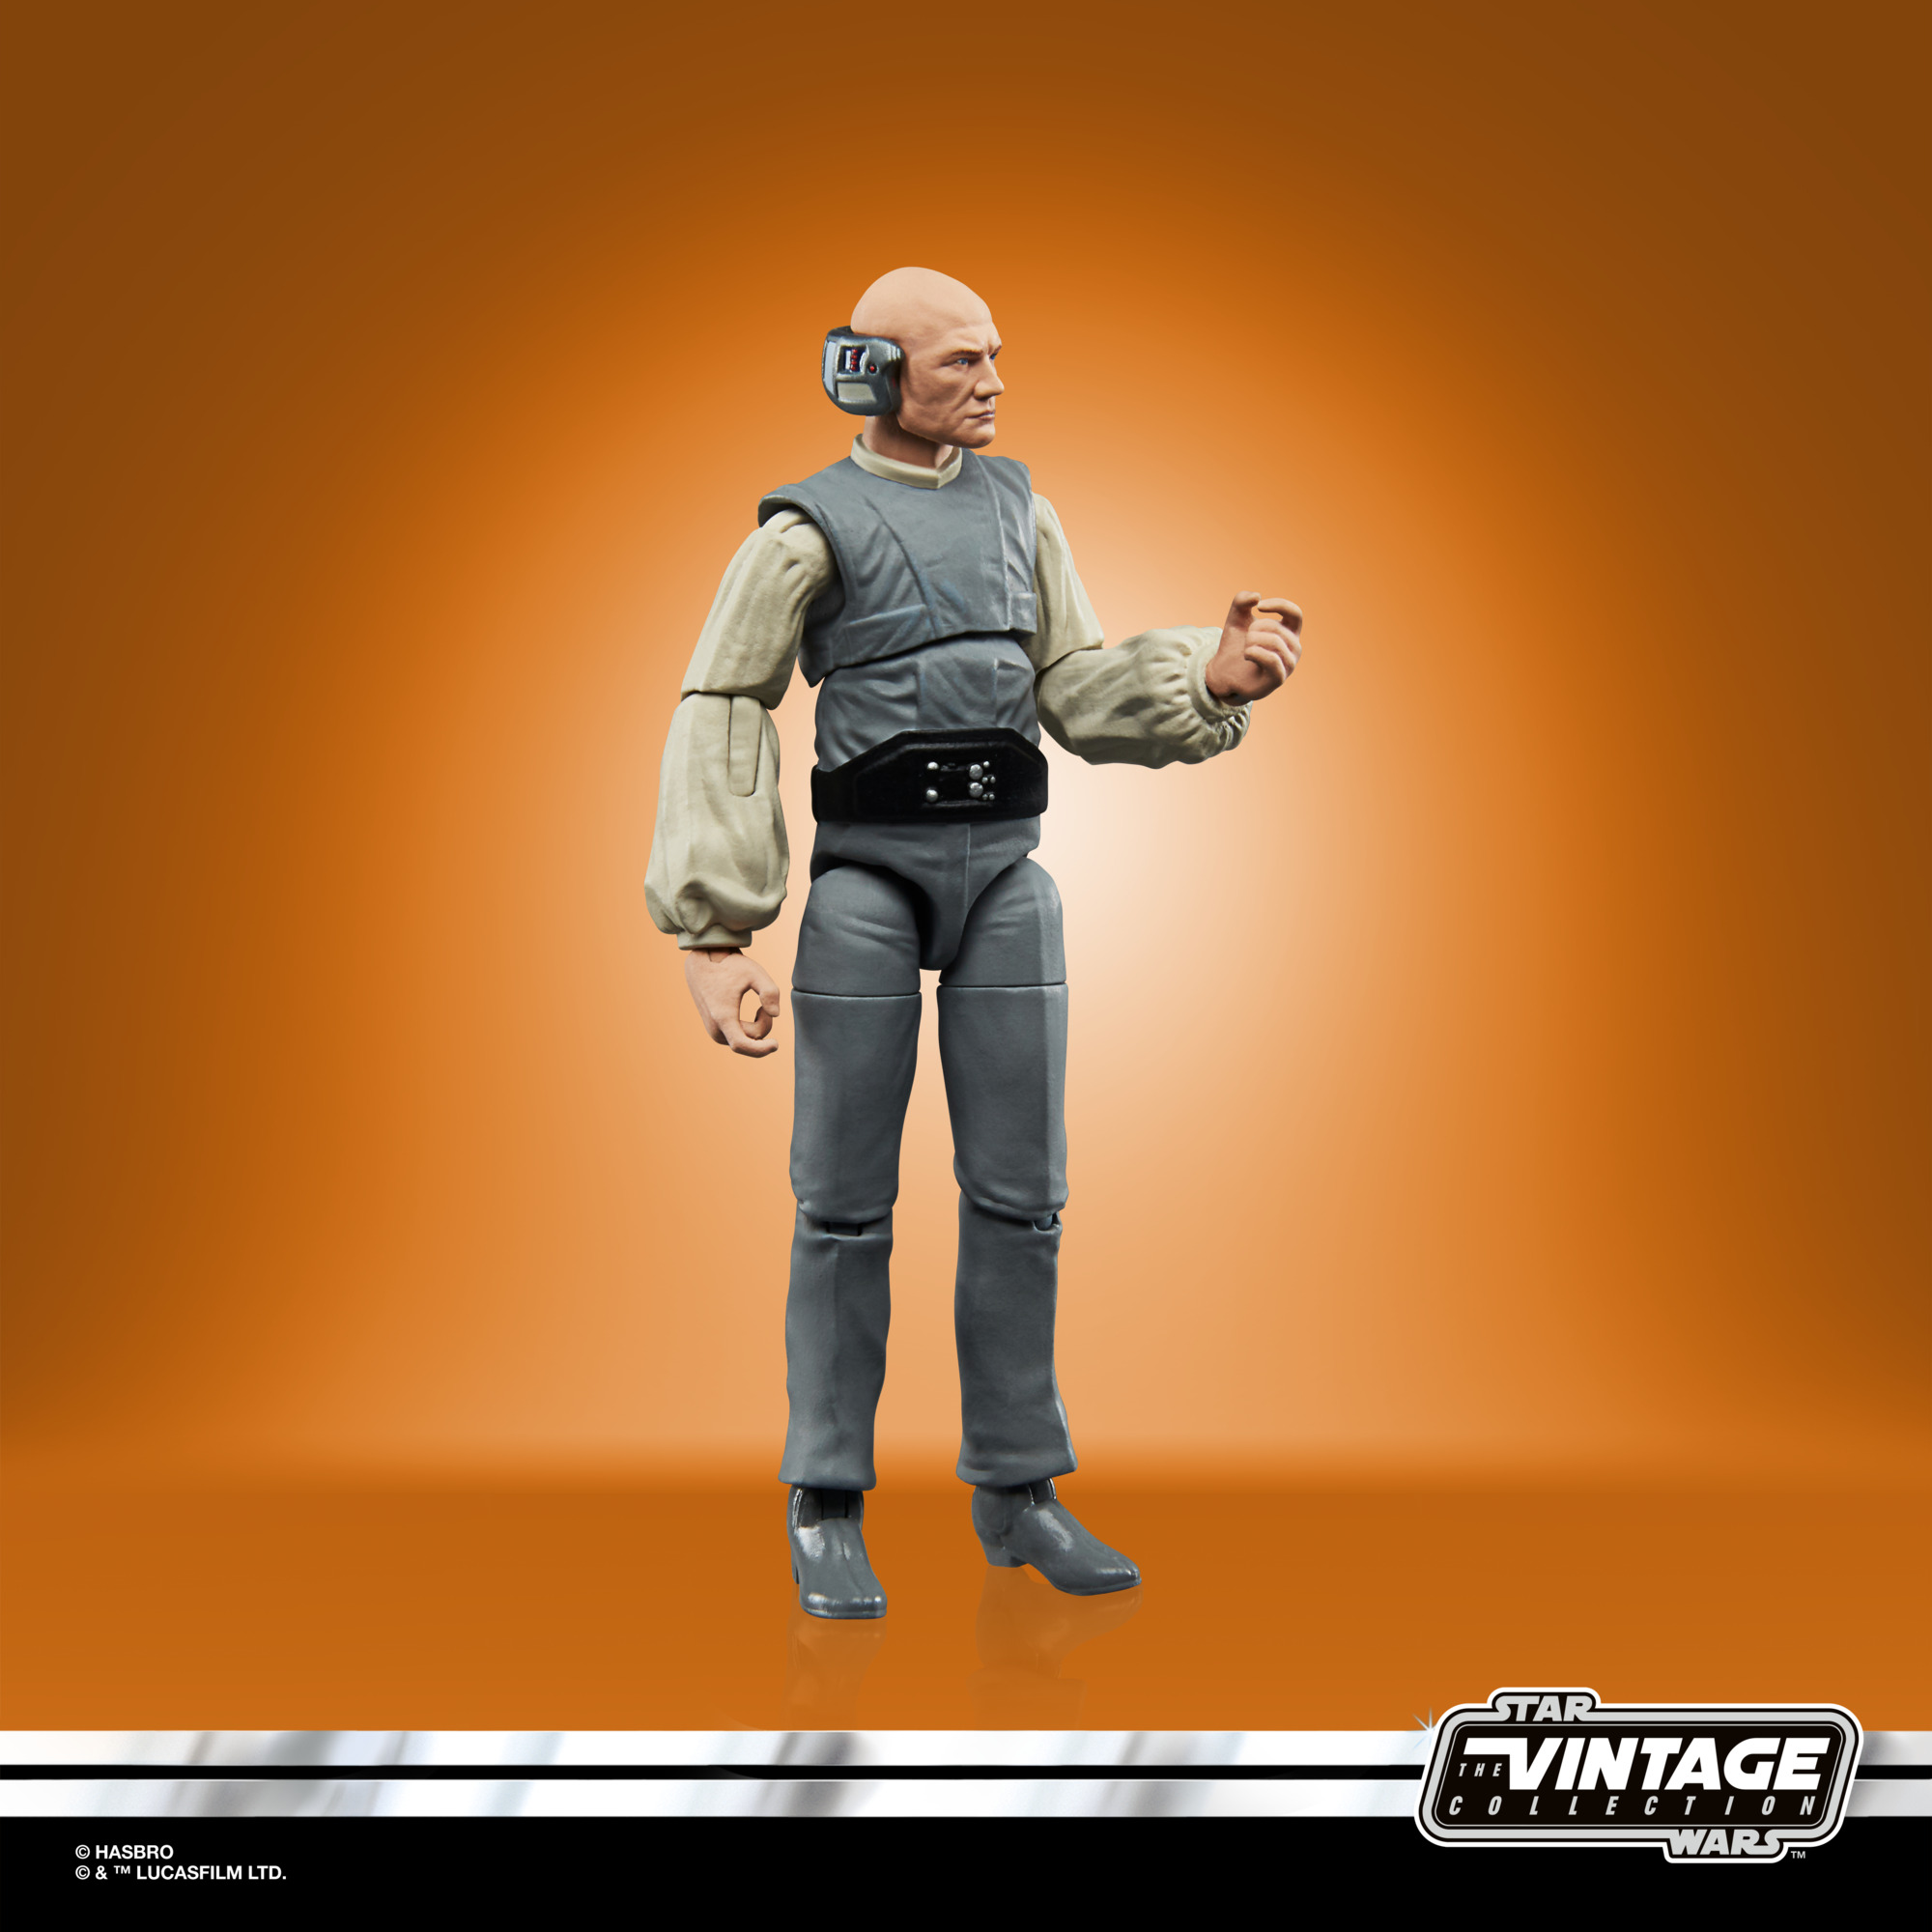 Star Wars The Vintage Collection Lobot F44625X00 5010993957996